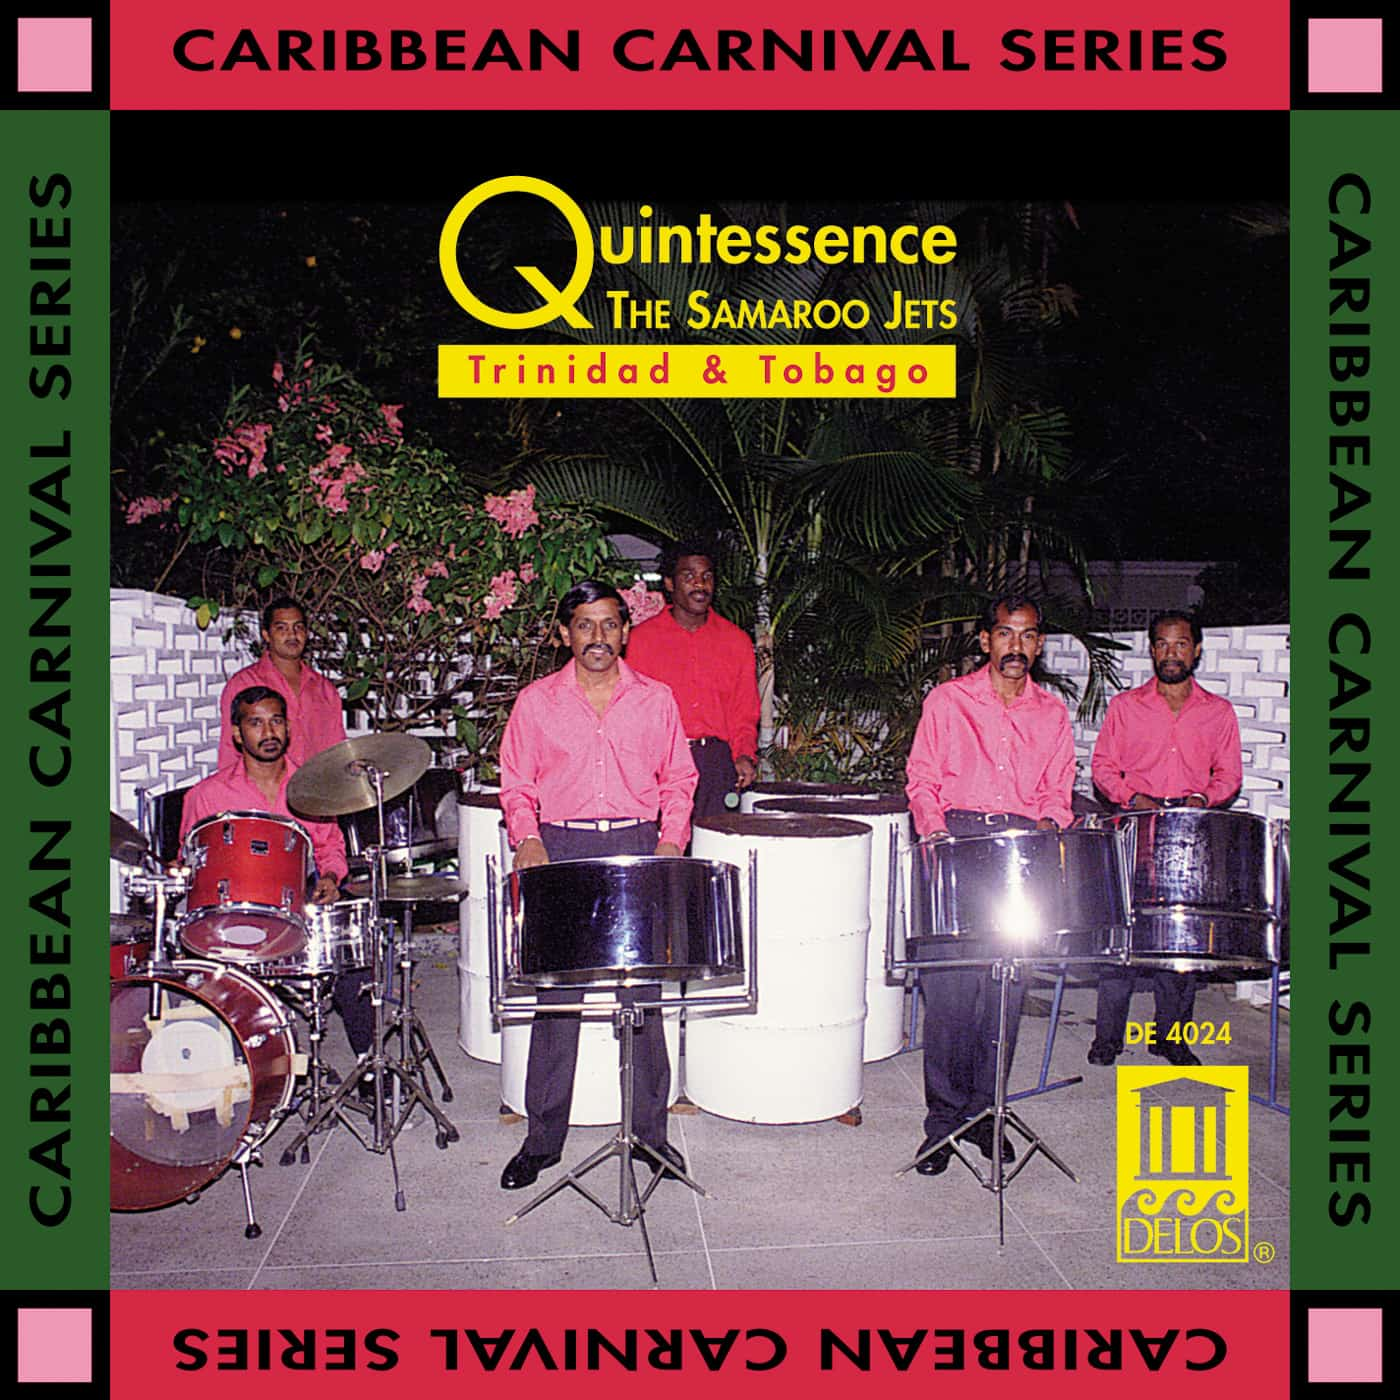 Quintessence - The Samaroo Jets, Trinidad & Tobago